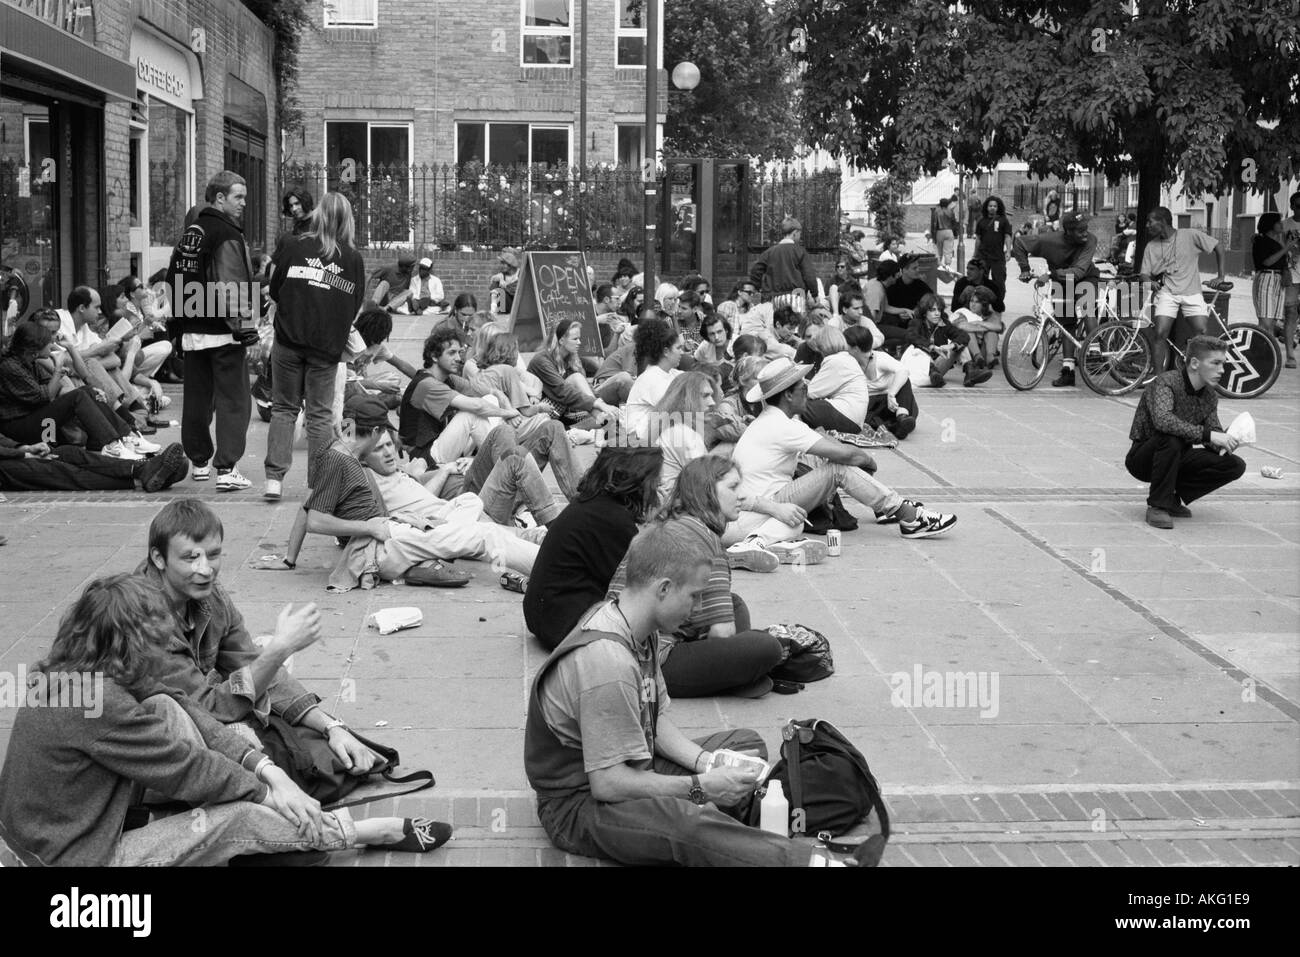 Young crowd watching Notting Hill Carnival - Stock Image